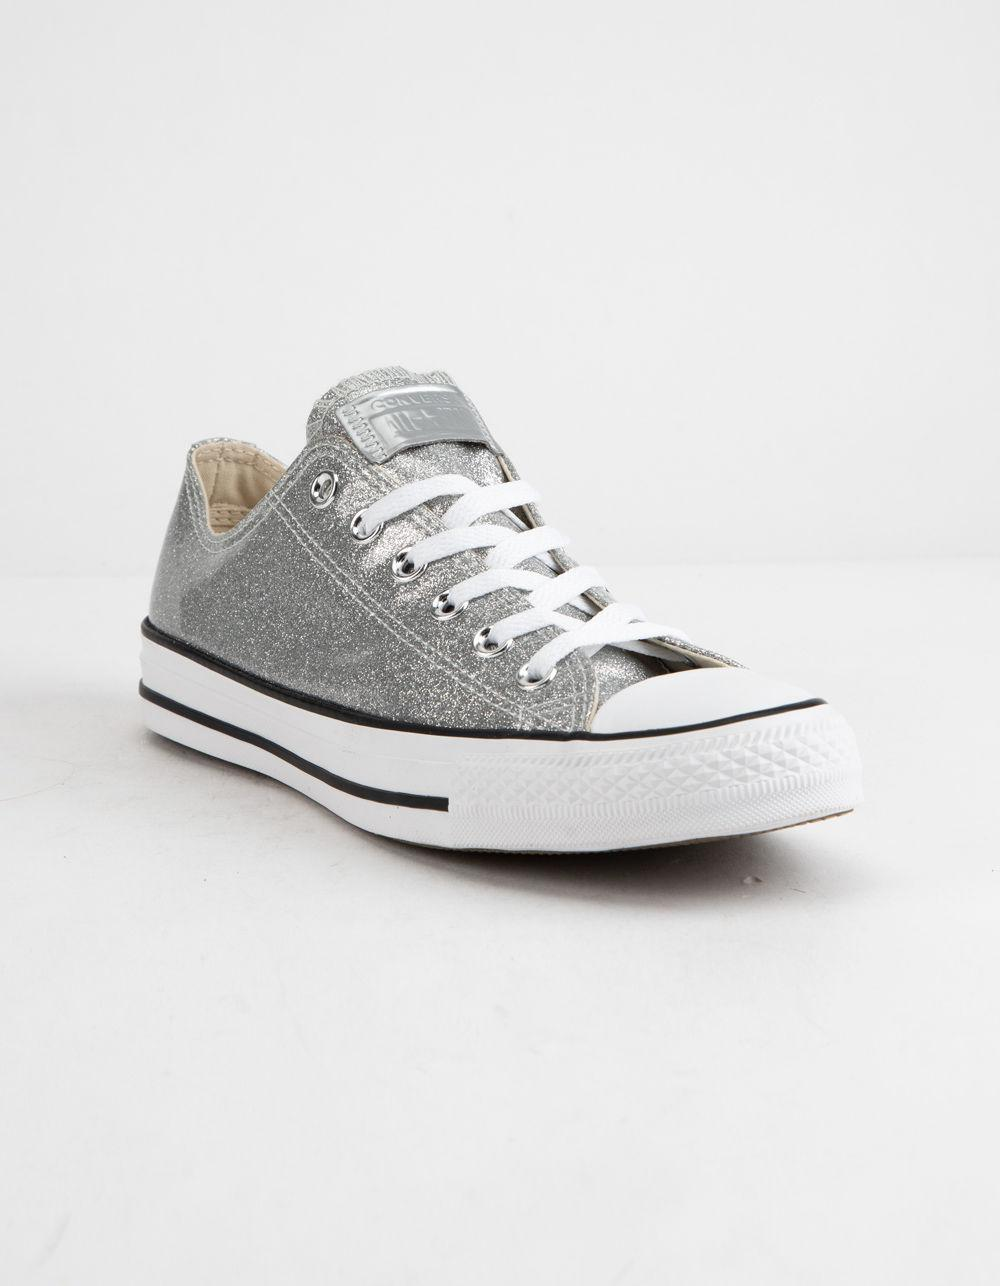 1857f08d1fea Lyst - Converse Chuck Taylor All Star Wonderworld Ox Silver   White Low Top  Women Shoes in White